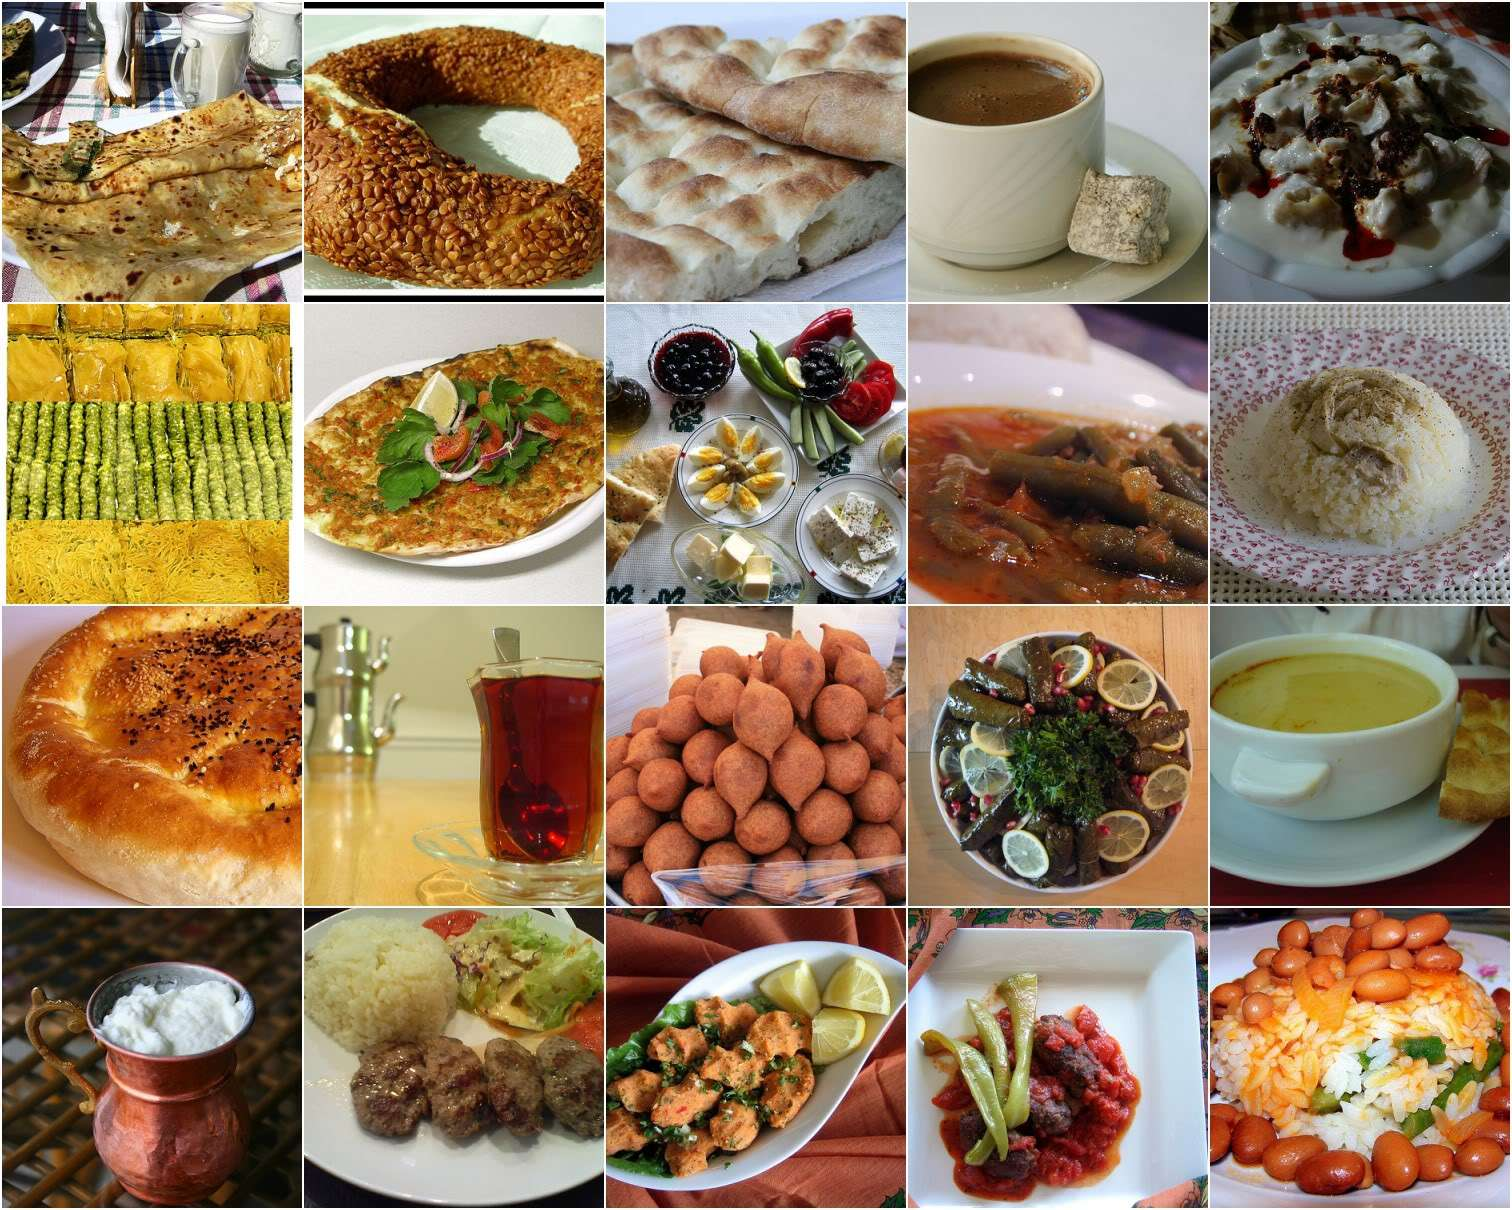 Food in Turkey